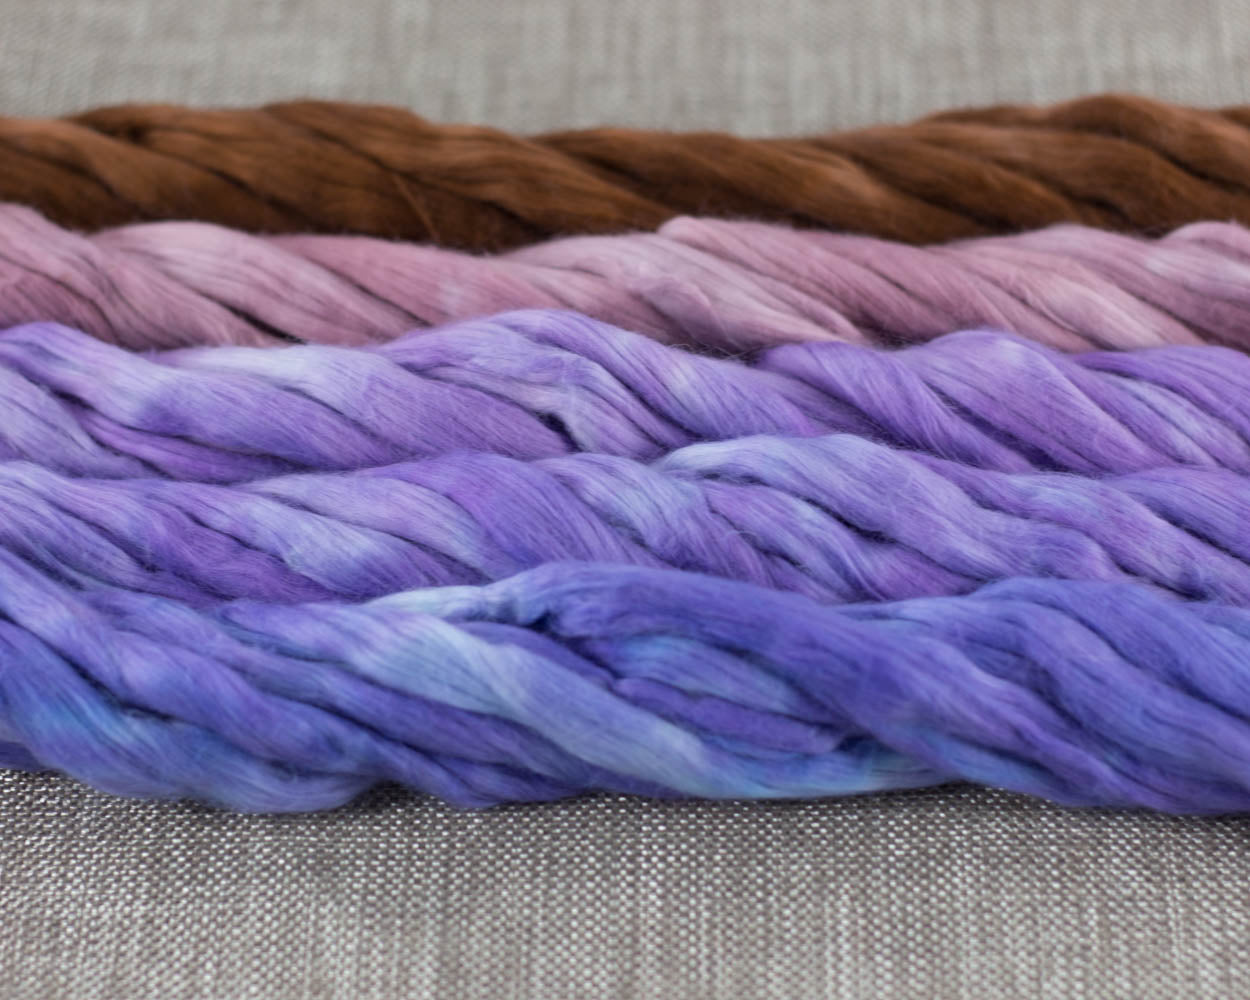 Cotton Sliver, Aster Fields - Buchanan Fiber Co.